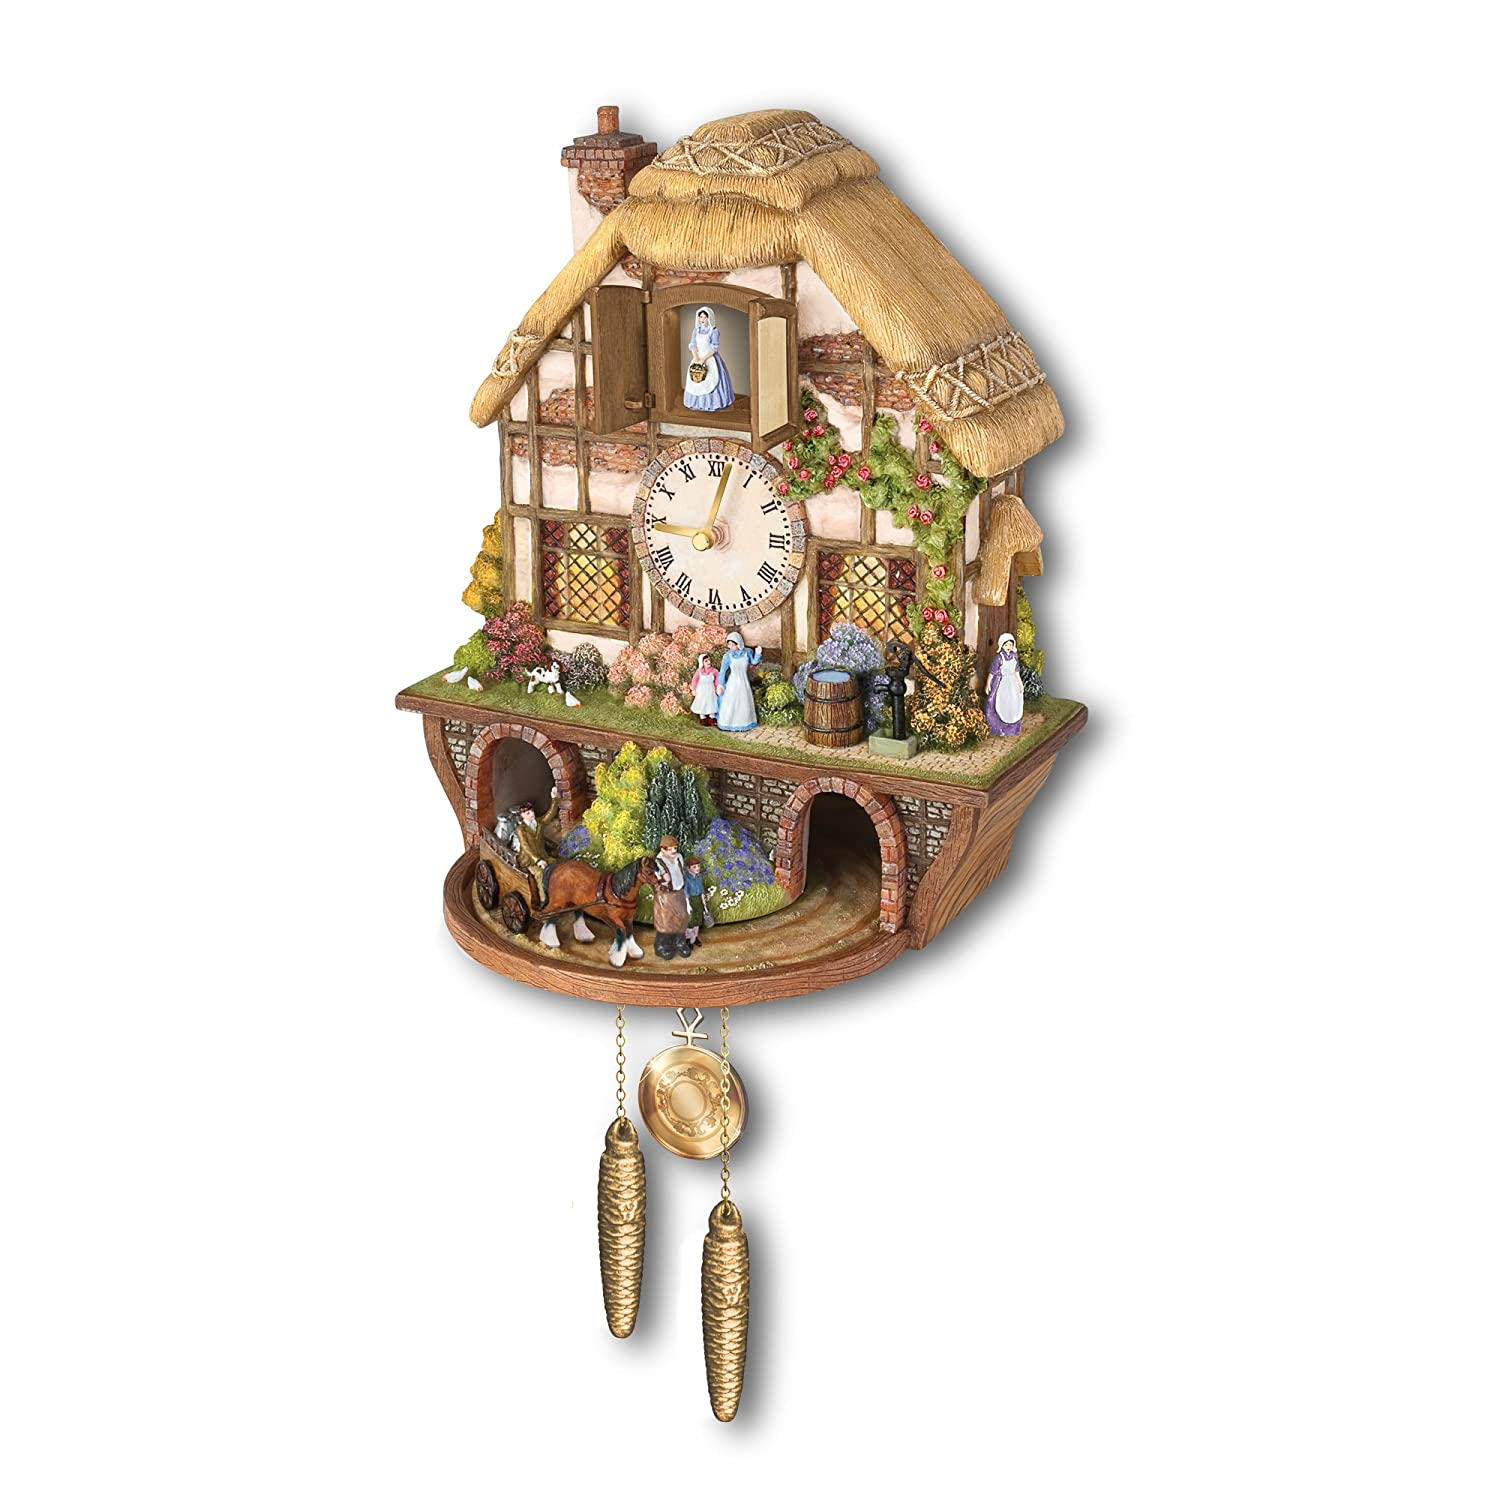 The Bradford Exchange Country Days Cuckoo Clock features a Tranquil English Country Scene from A Bygone Era. 426B394301U